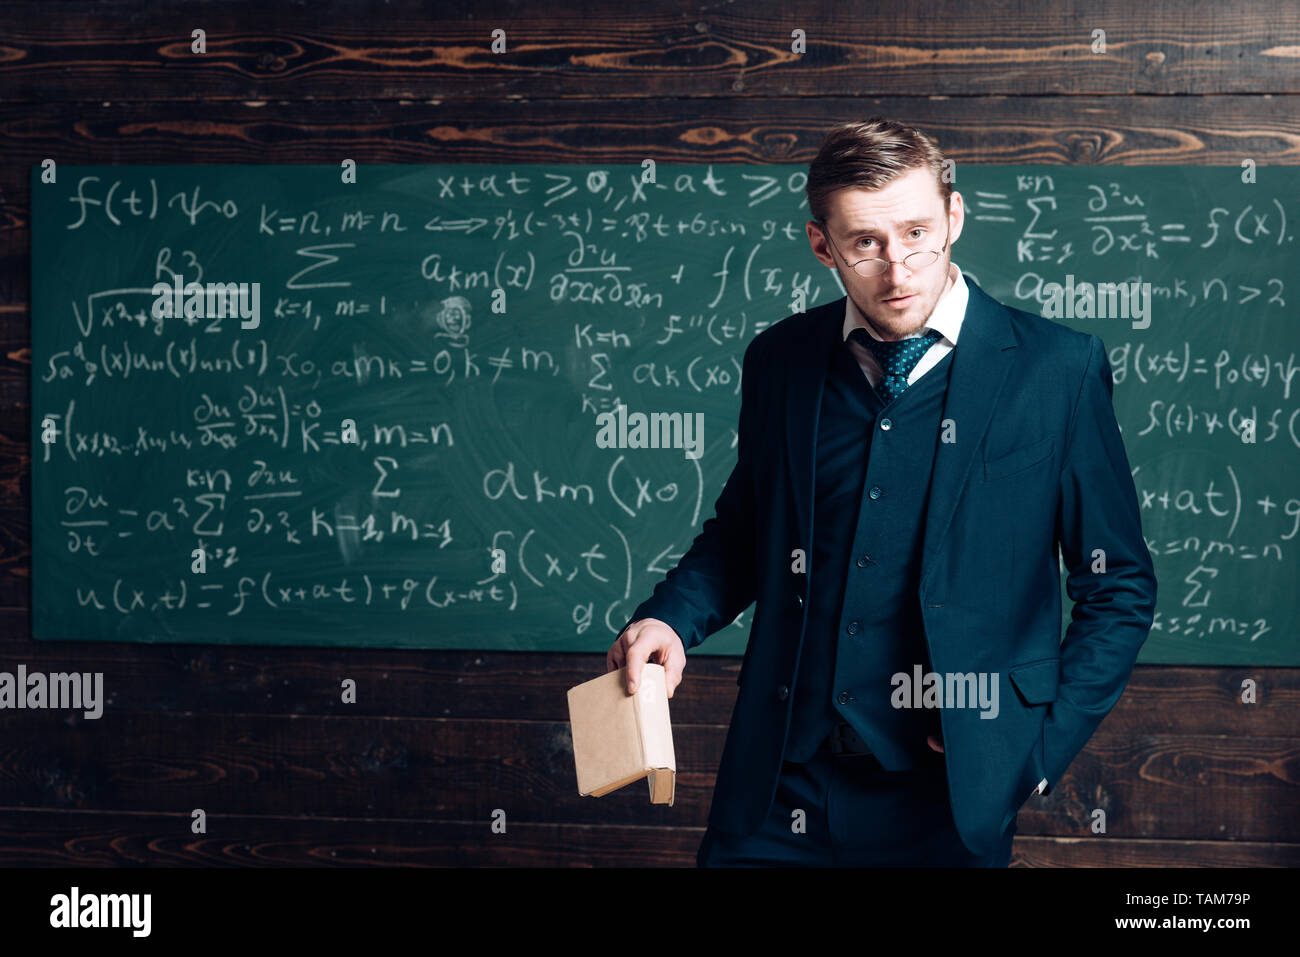 Exacting teacher. Teacher formal wear and glasses looks smart, chalkboard background. Man with high expectations looks unsatisfied with students - Stock Image